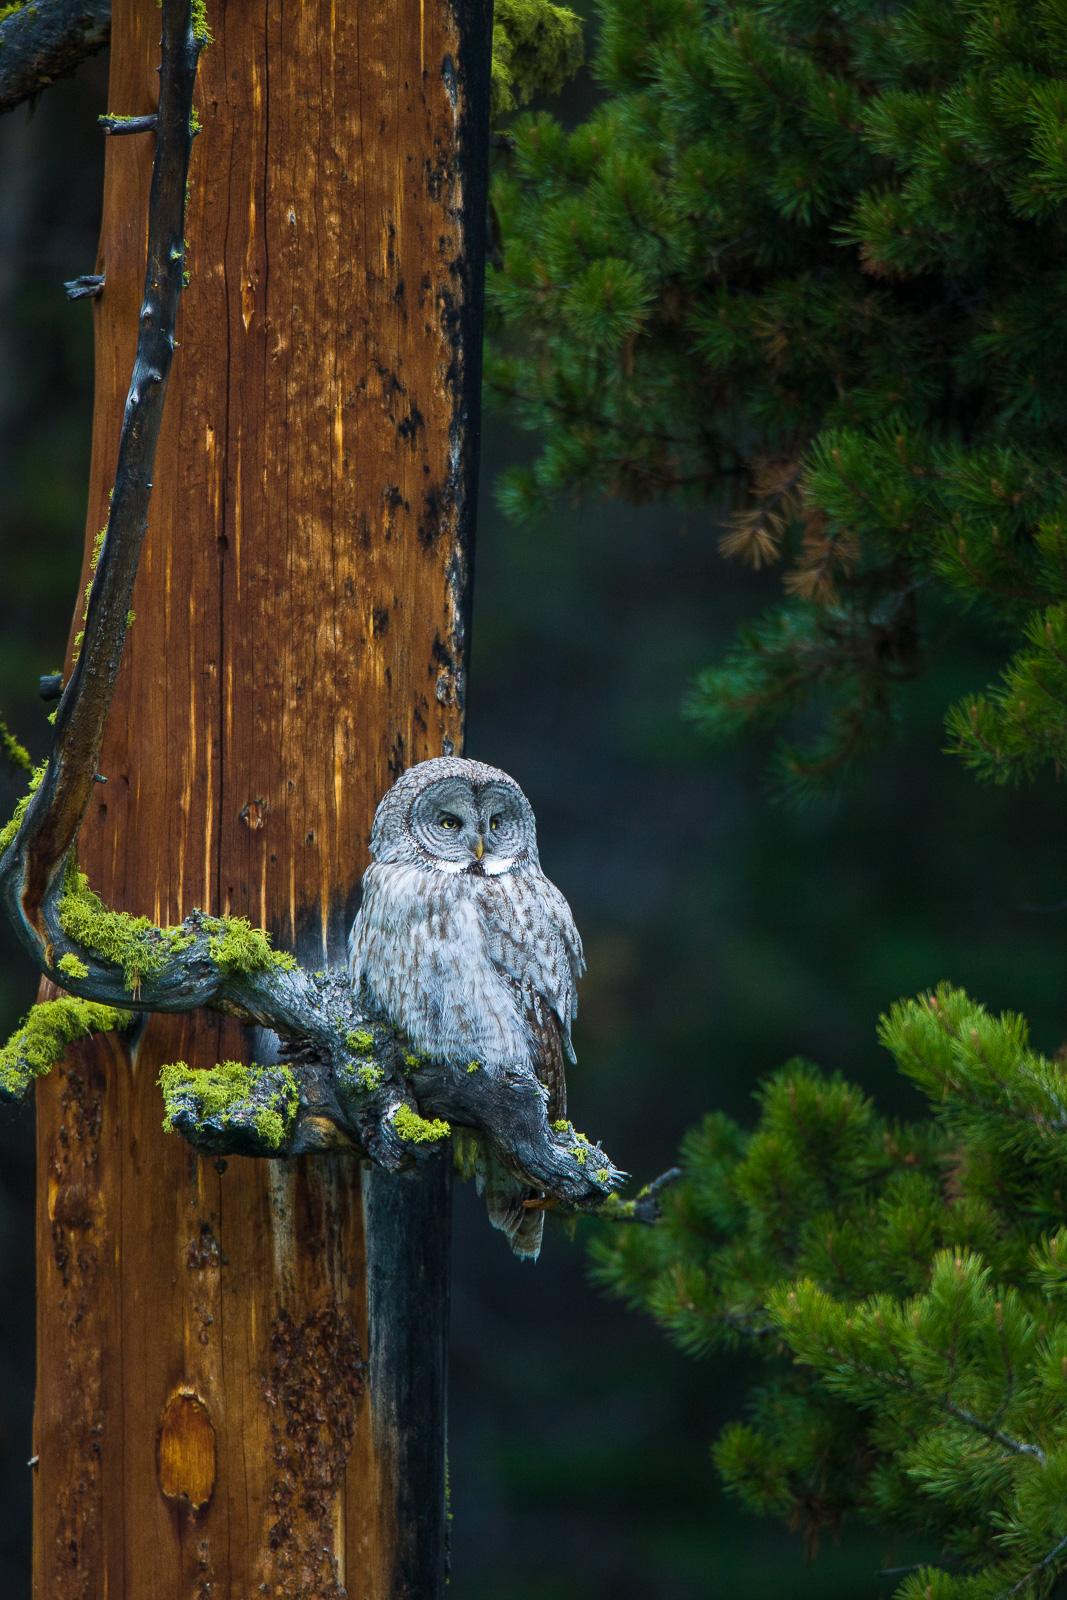 Hoo Hoo's Watching?,Great Grey Owl, bird, Strix nebulosa, Yellowstone National Park, photo